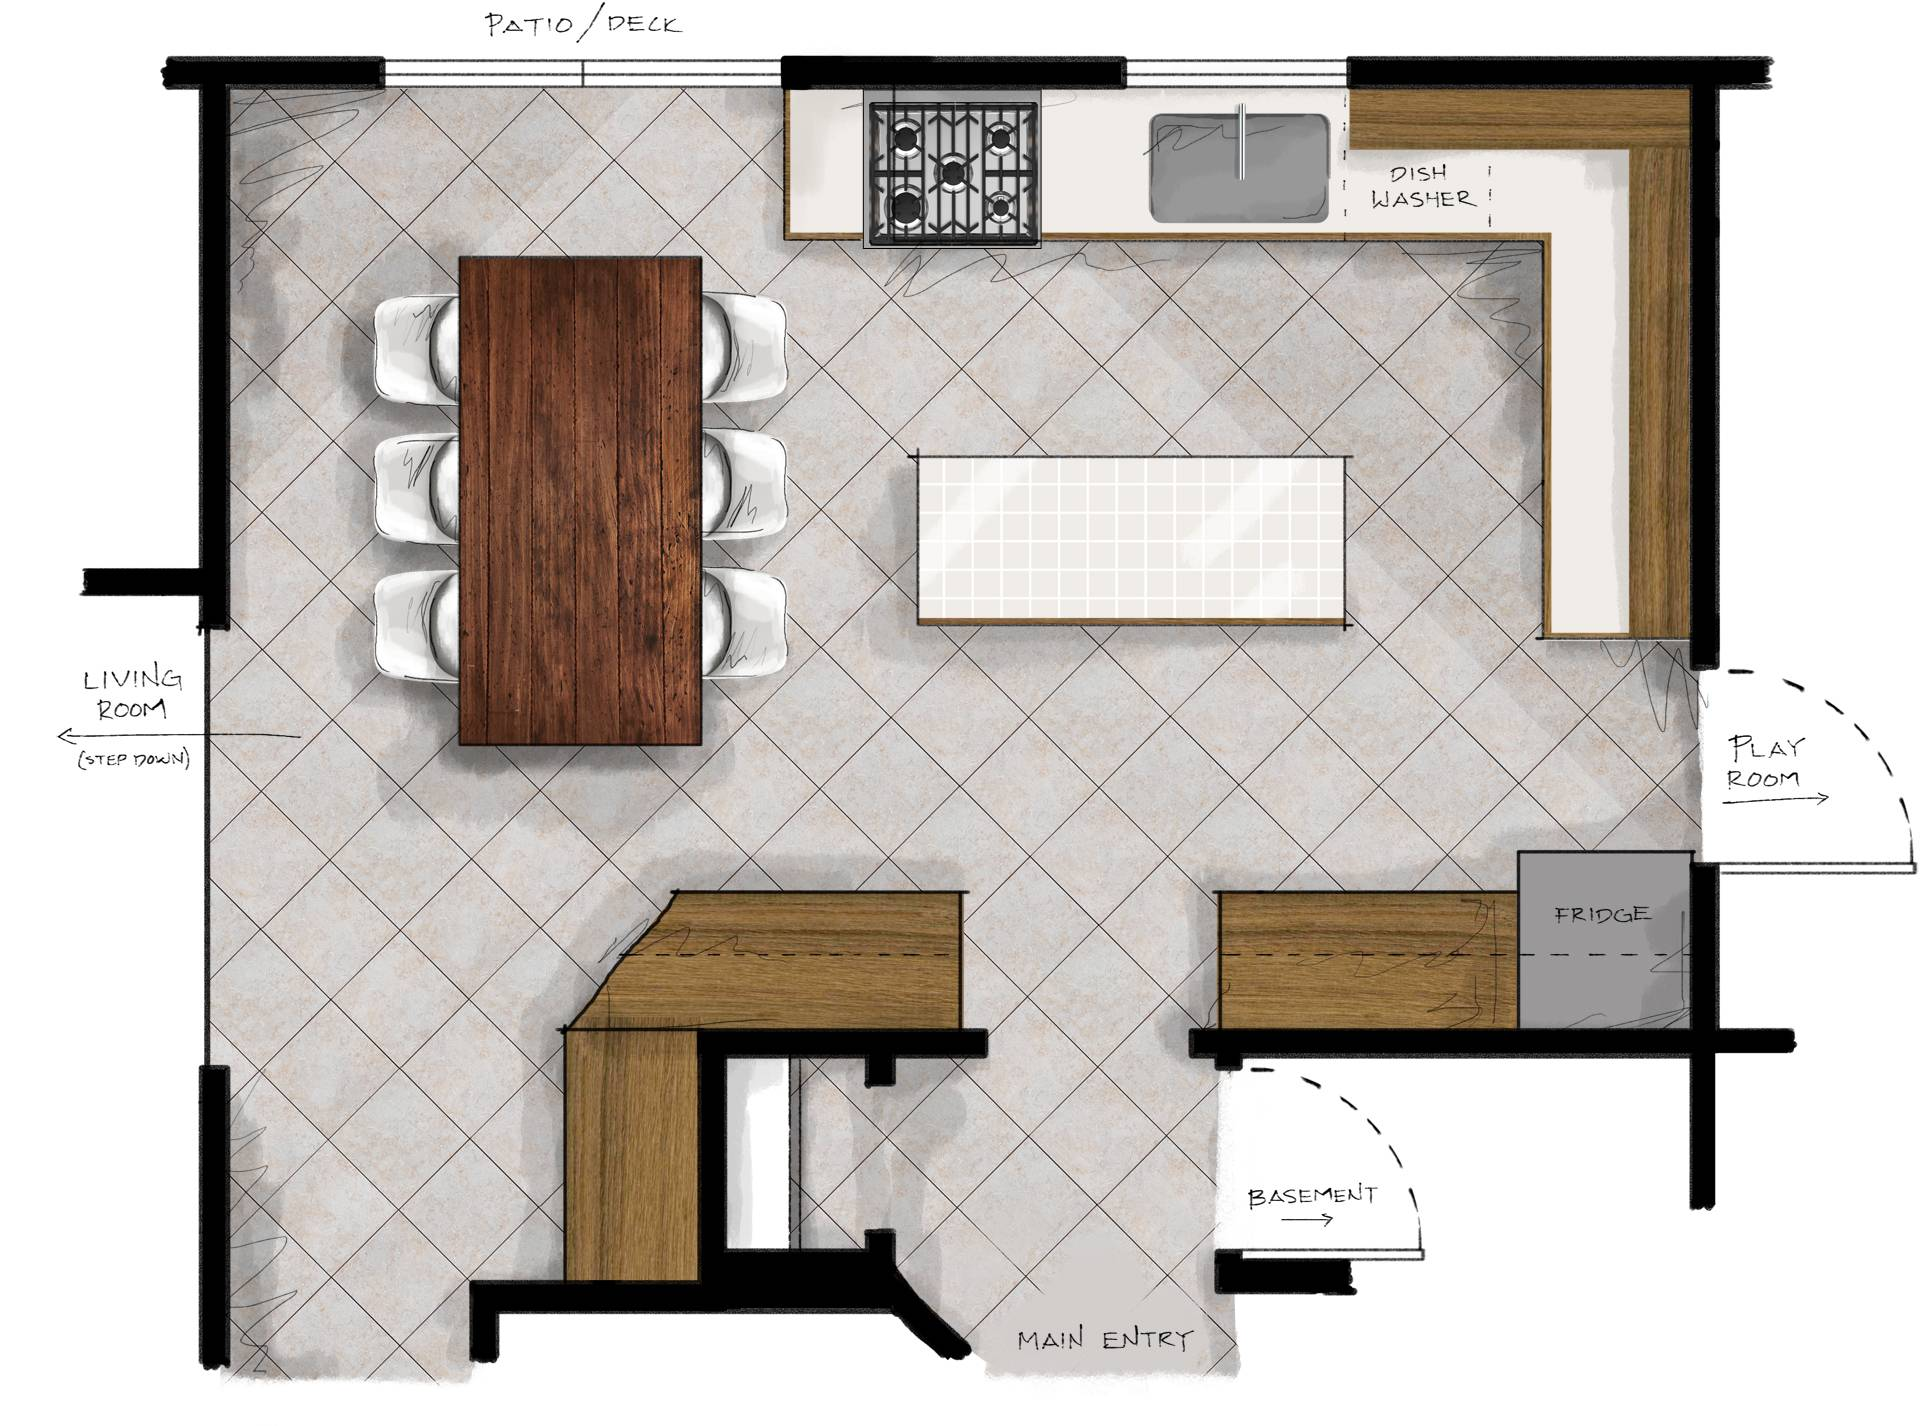 New Kitchen Plans Making Nice Midwest